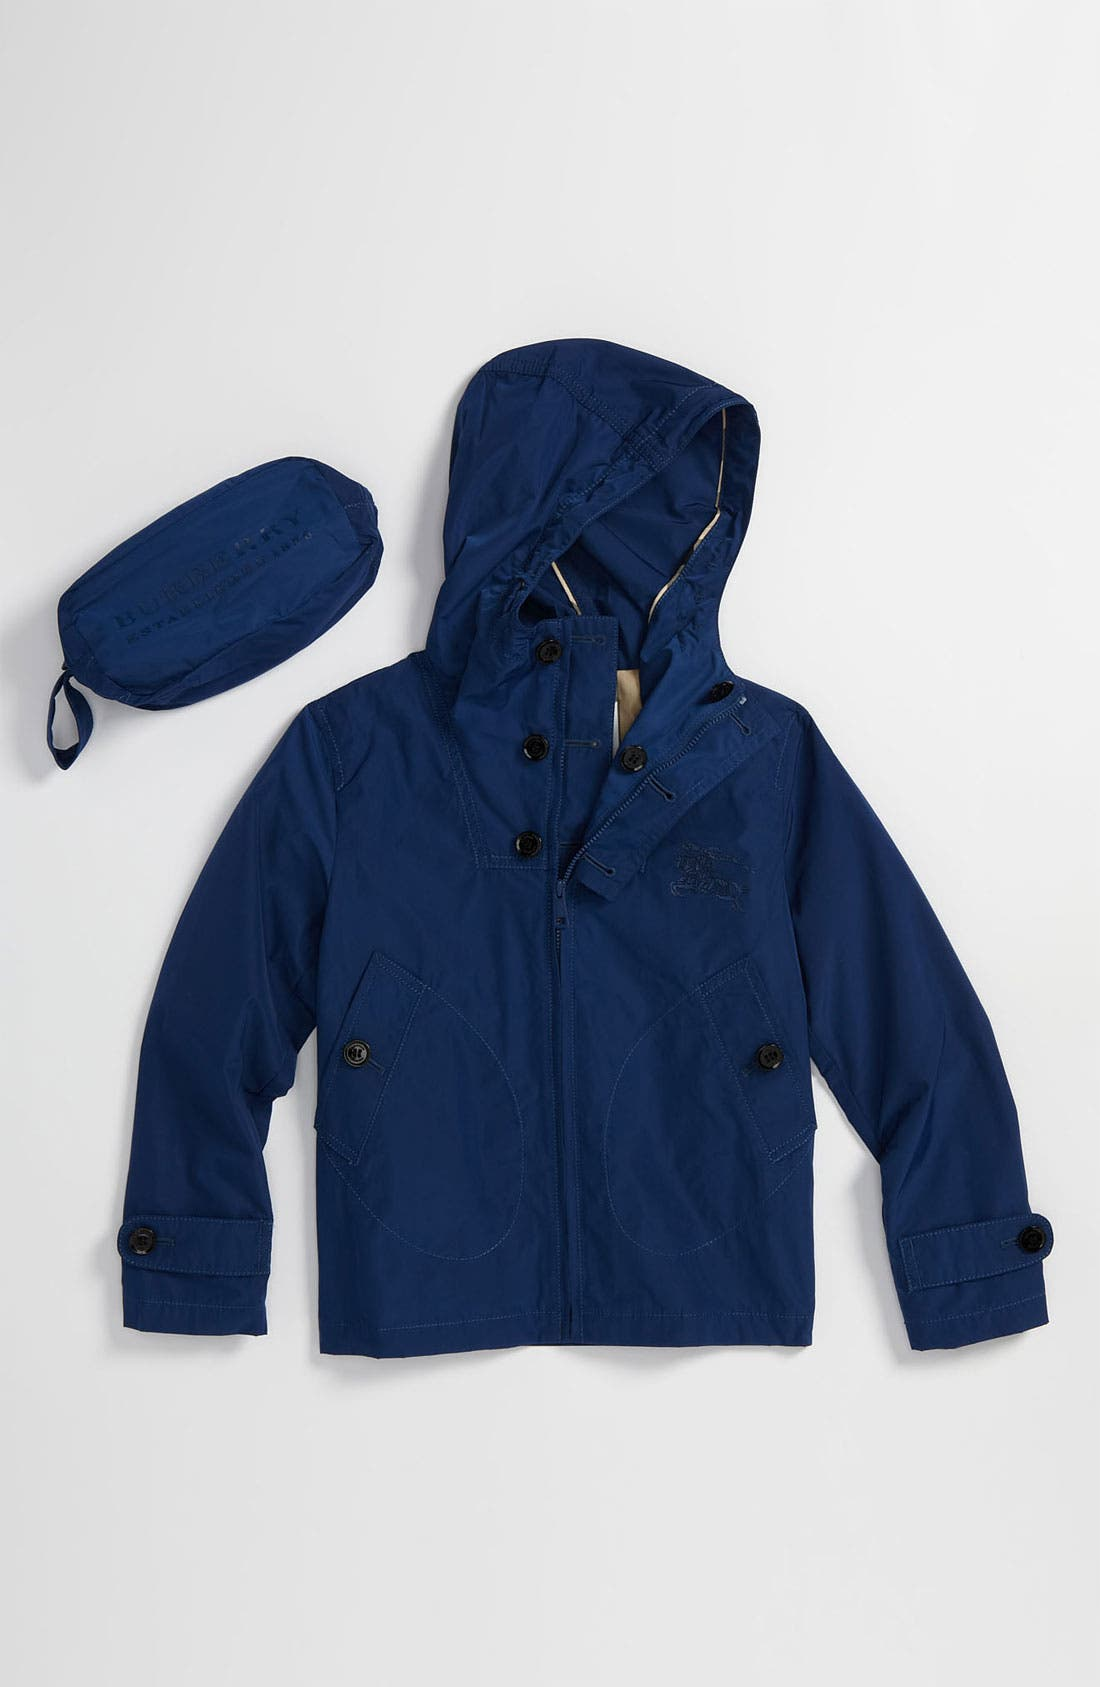 Alternate Image 1 Selected - Burberry Packable Jacket (Little Boys & Big Boys)